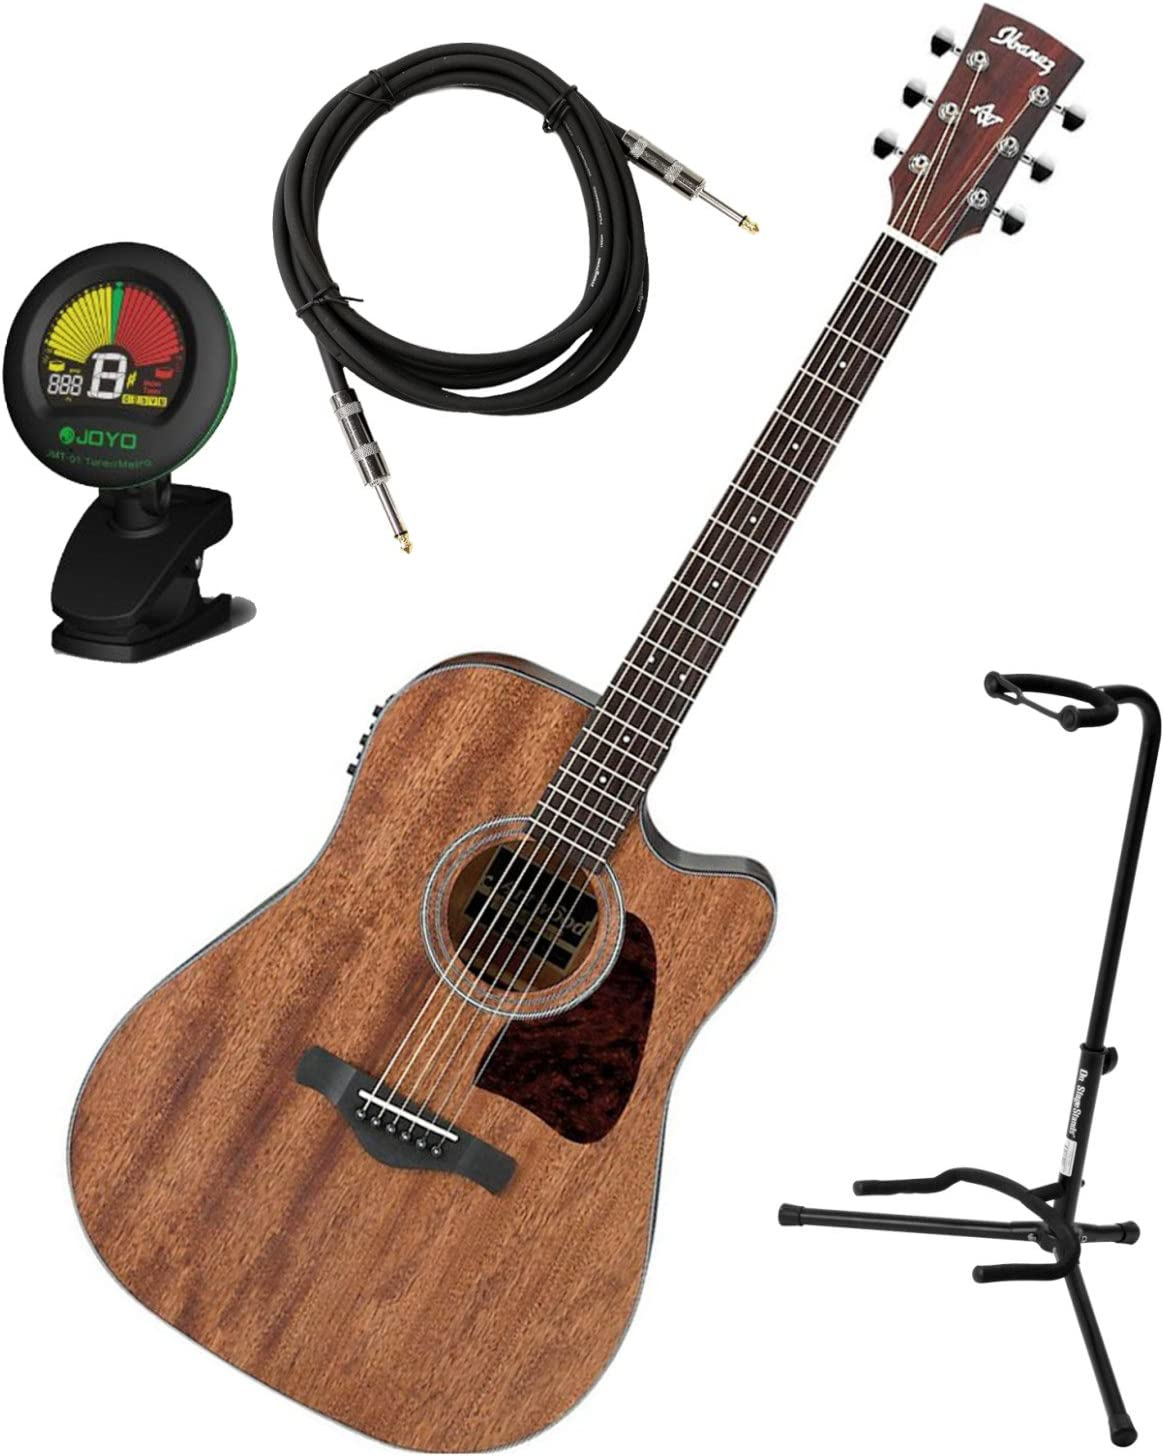 The Best Overall Ibanez Acoustic Guitar